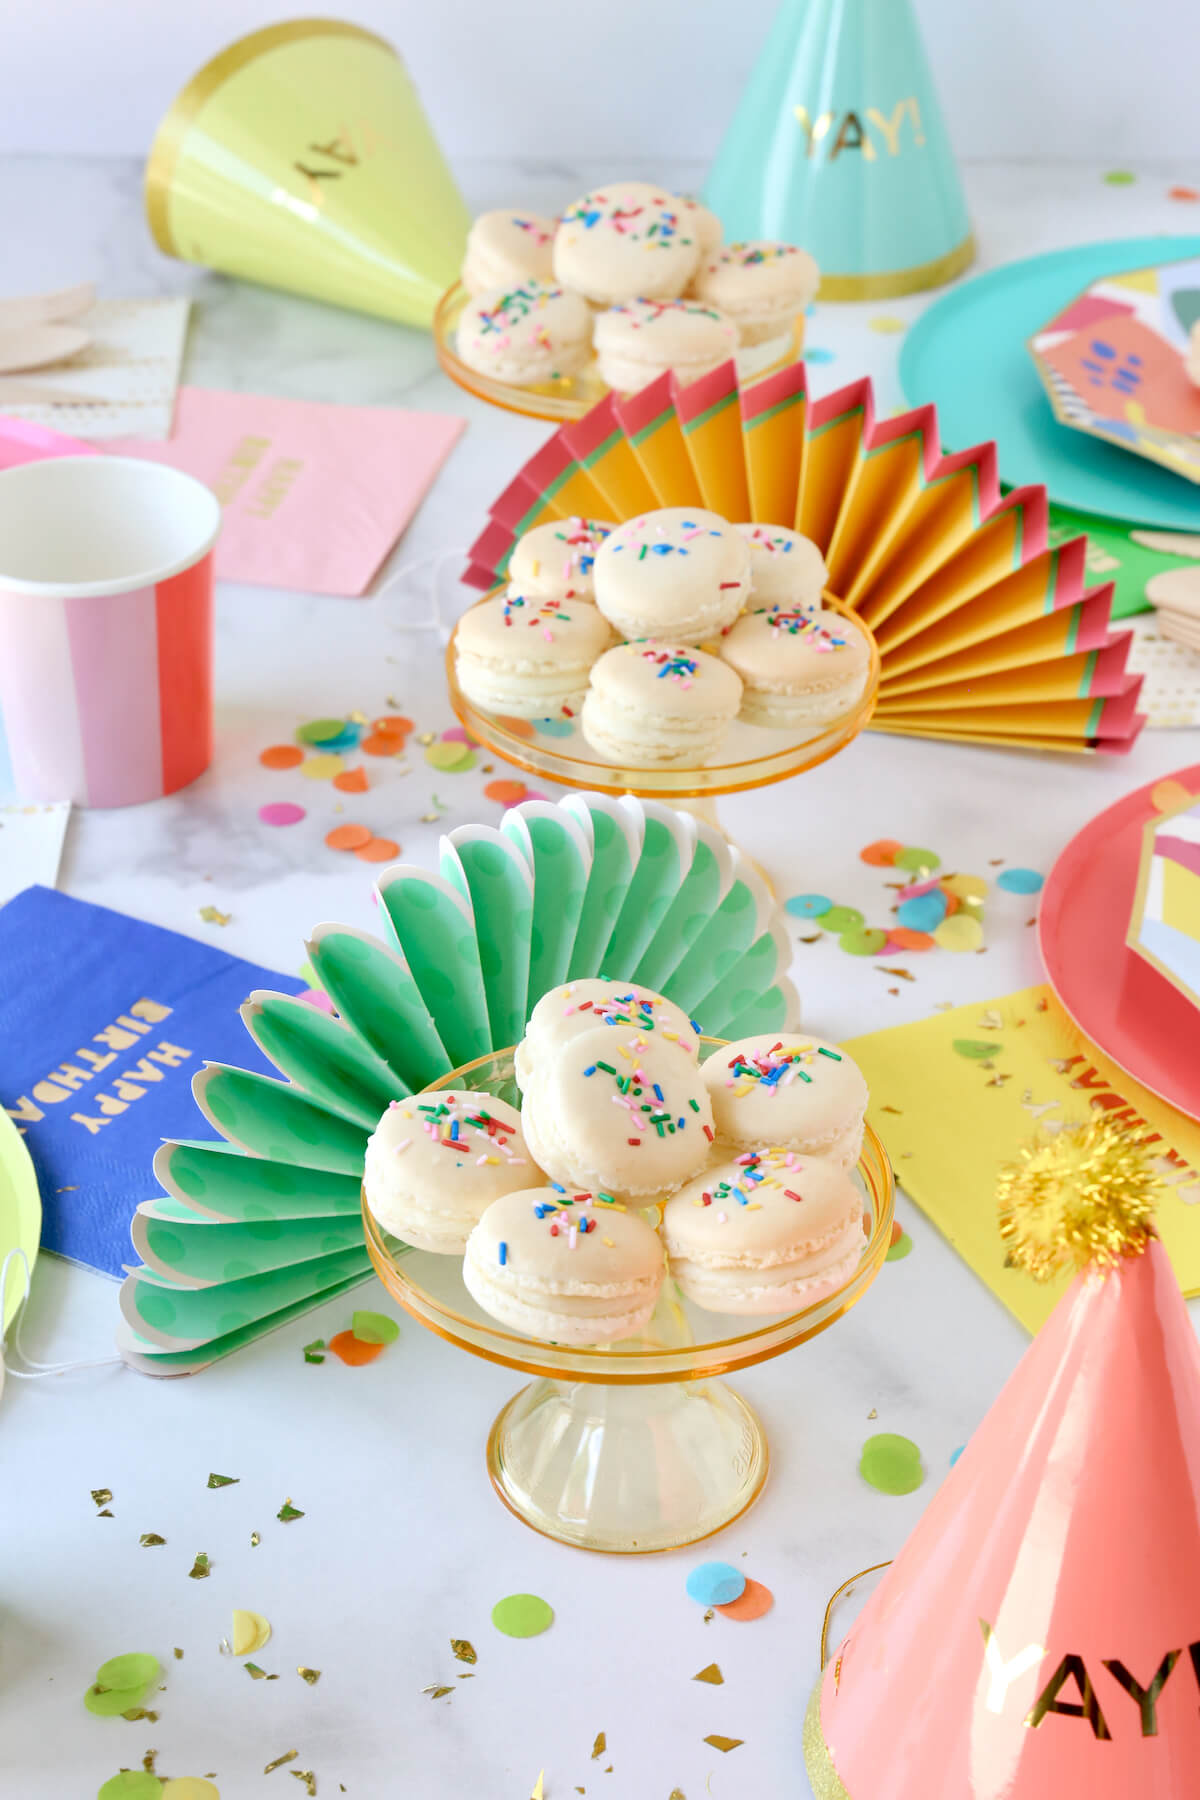 Funfetti French Macarons on a table of colorful plates and party supplies.